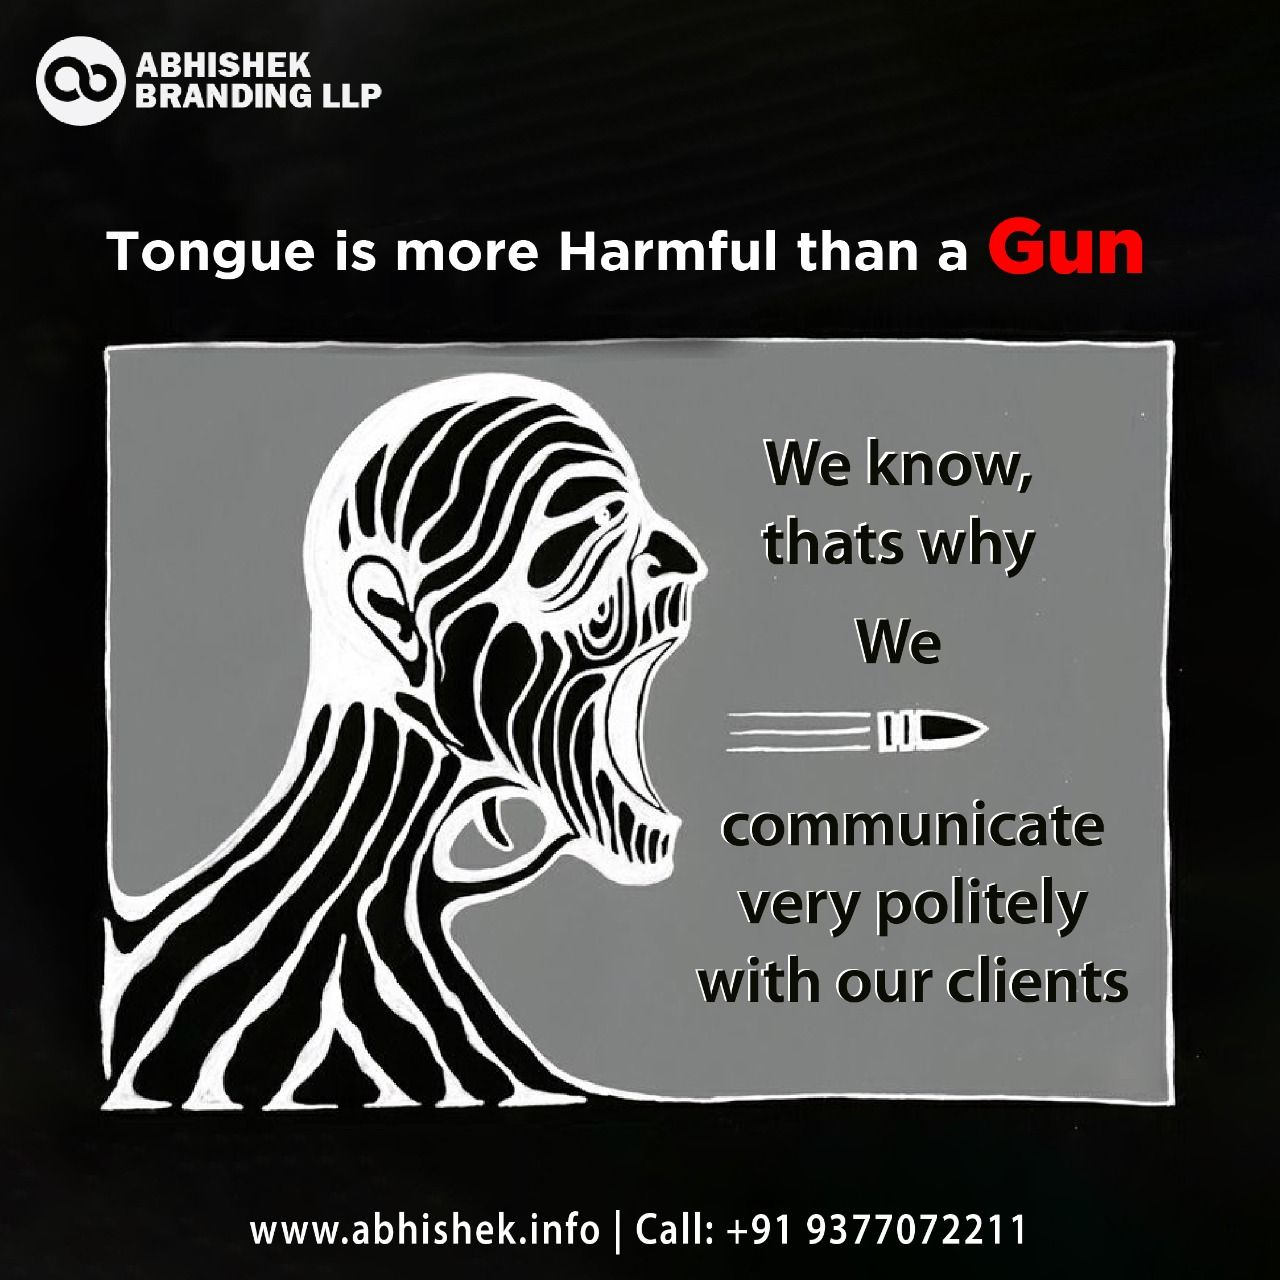 Tongue is more Harmful Than a Gun. We Know, That's why we Communicate very Politely with our clients. Website: www.abhishek.info #brandingdesign #brandingagency #brandingidentity #brandingtips #brandinginspiration #brandingdesigner #brandingstudio #brandinglogo #brandingexpert #brandingstrategy #brandingconsultant #brandingpersonal #branding #marketing #graphicdesign #design #digitalmarketing #business - #socialmedia #advertising #videoproduction #videomaker #vadodara #india #usa #uae #canada #l